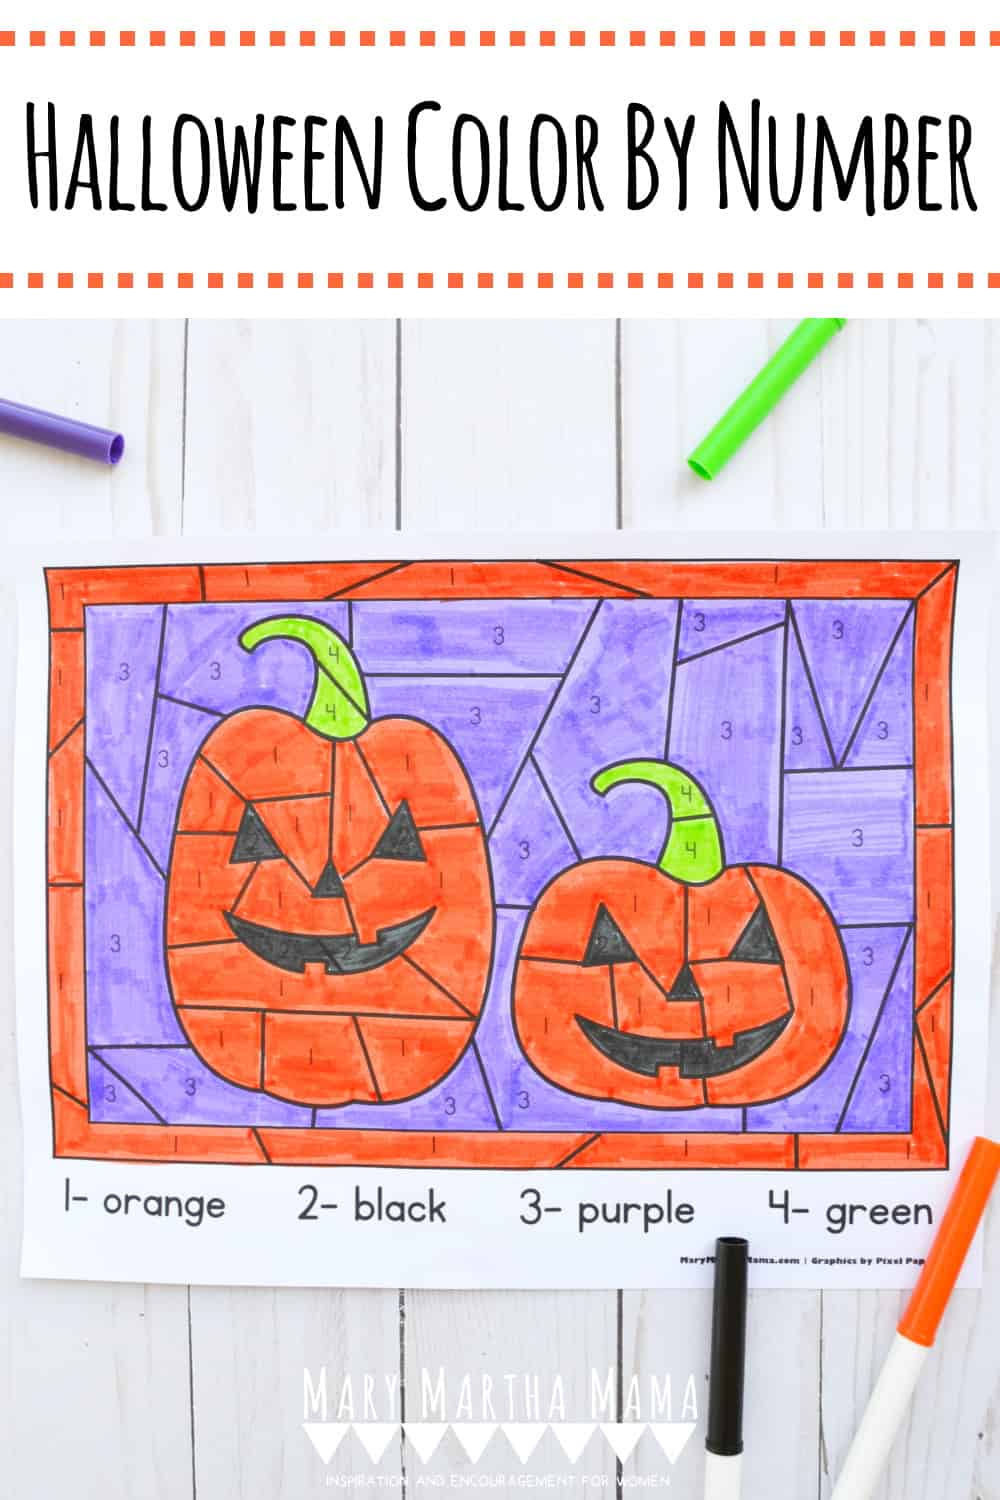 Your kids will love this free printable Halloween Color By Number pdf featuring cute little smiling jack o'lantern pumpkins.